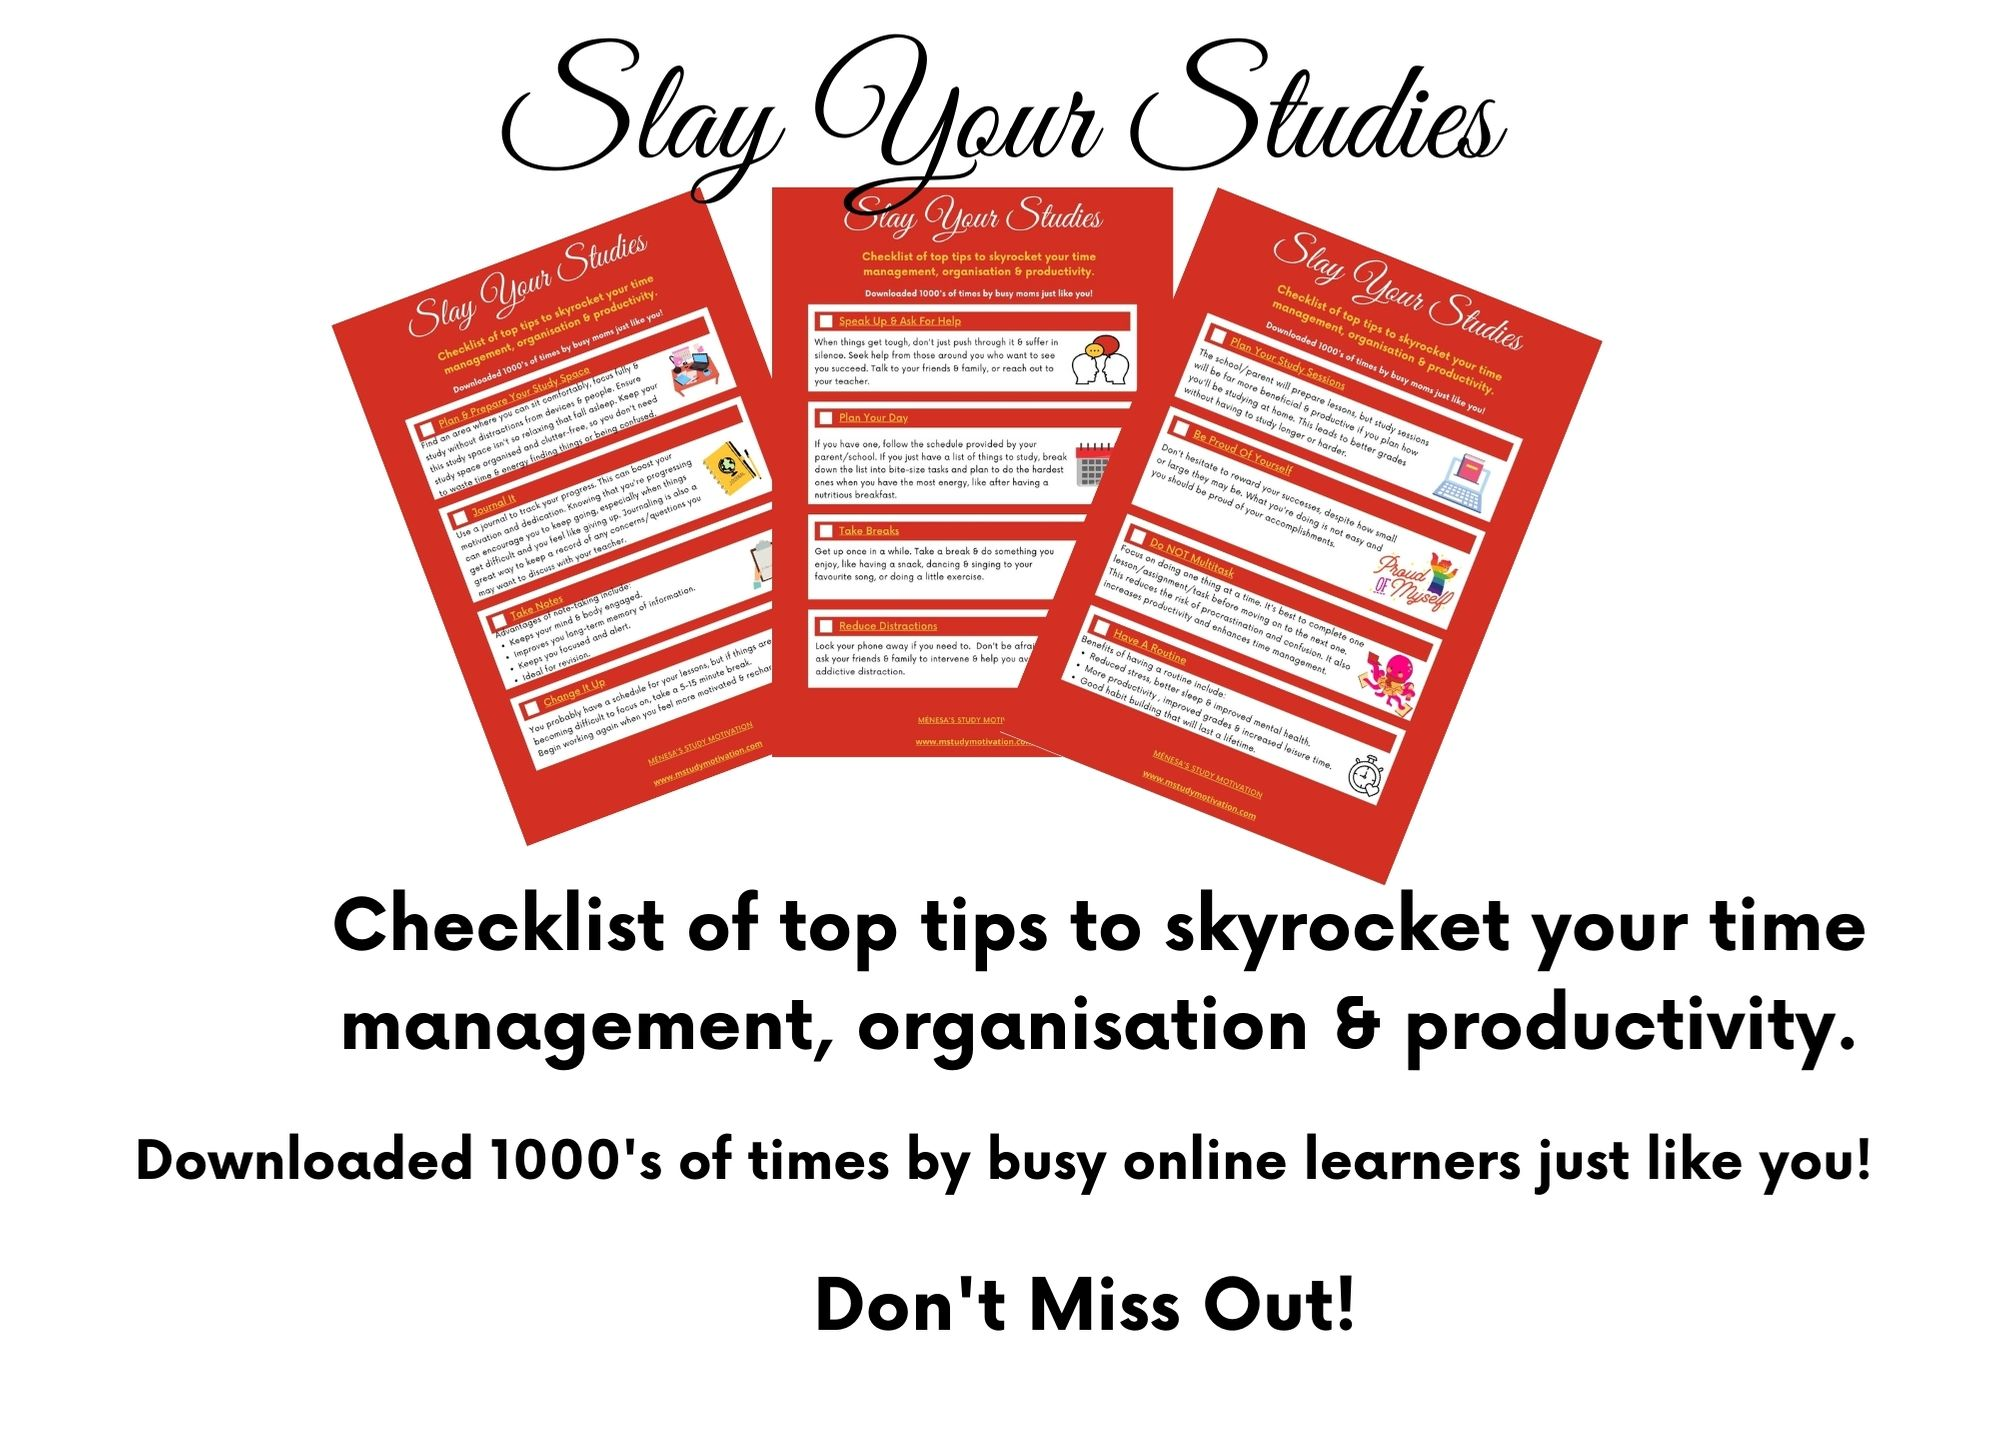 FREE CHECKLIST To help you Slay Your Studies